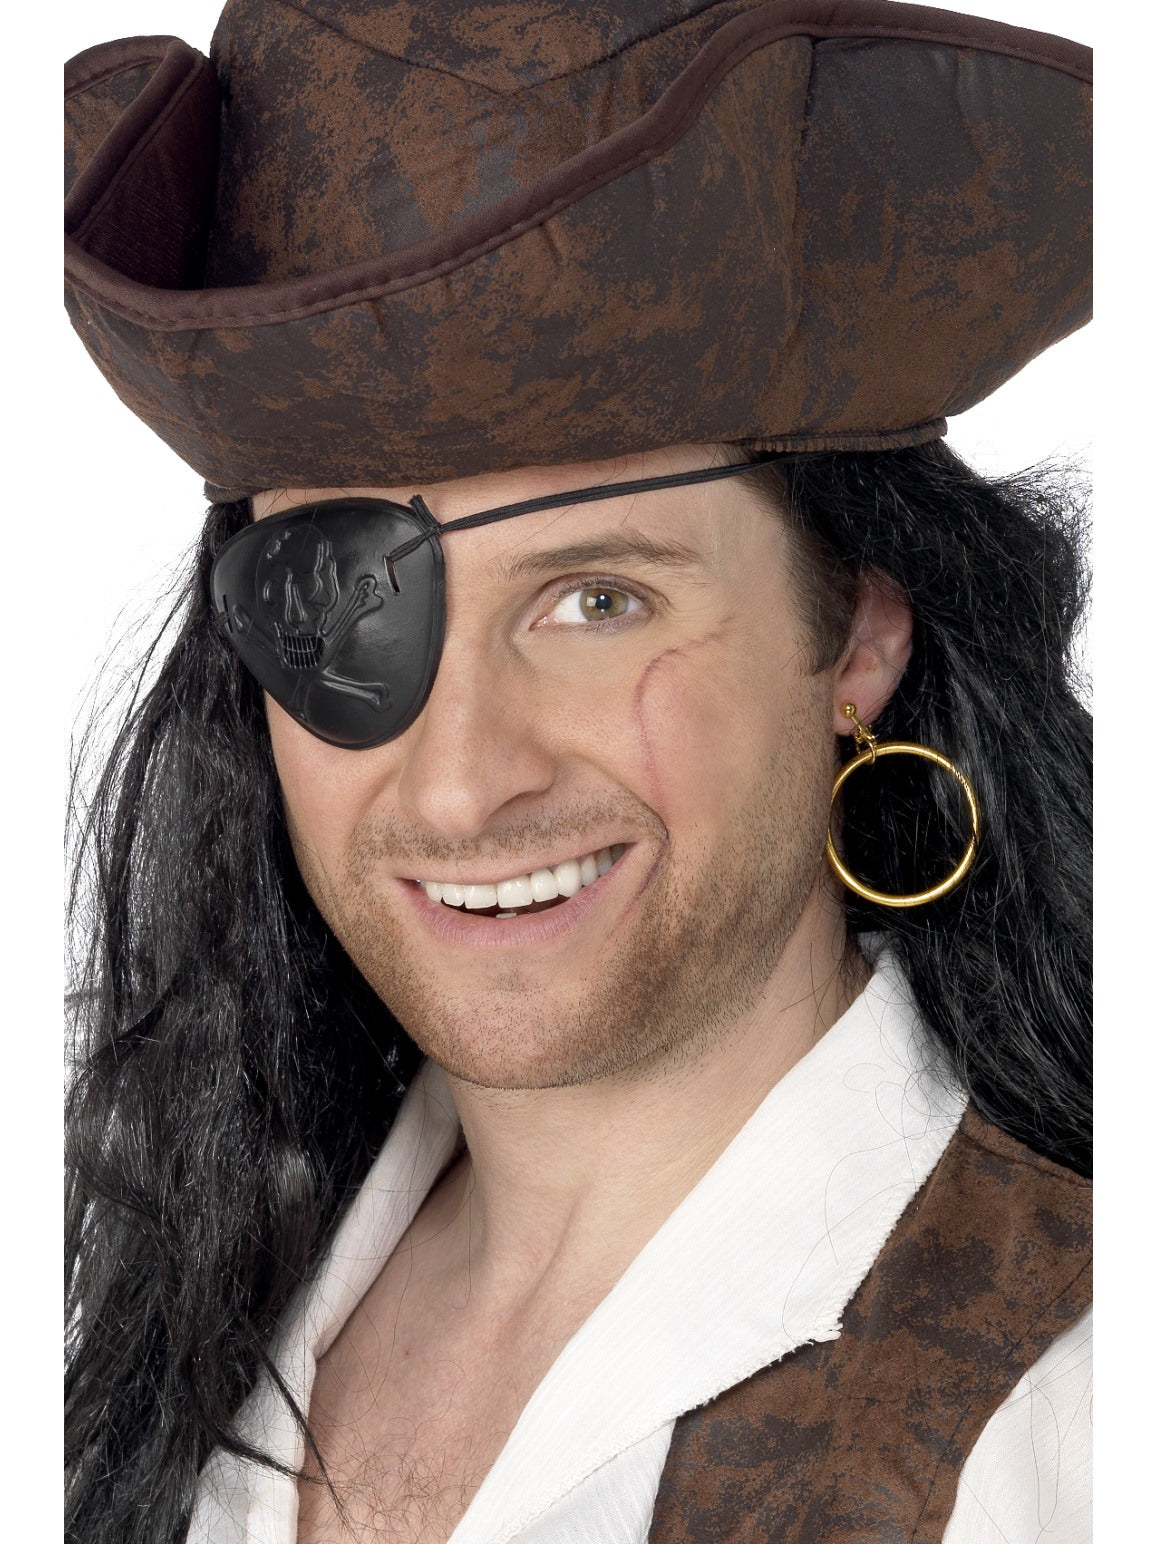 Black Pirate Eyepatch and Earring